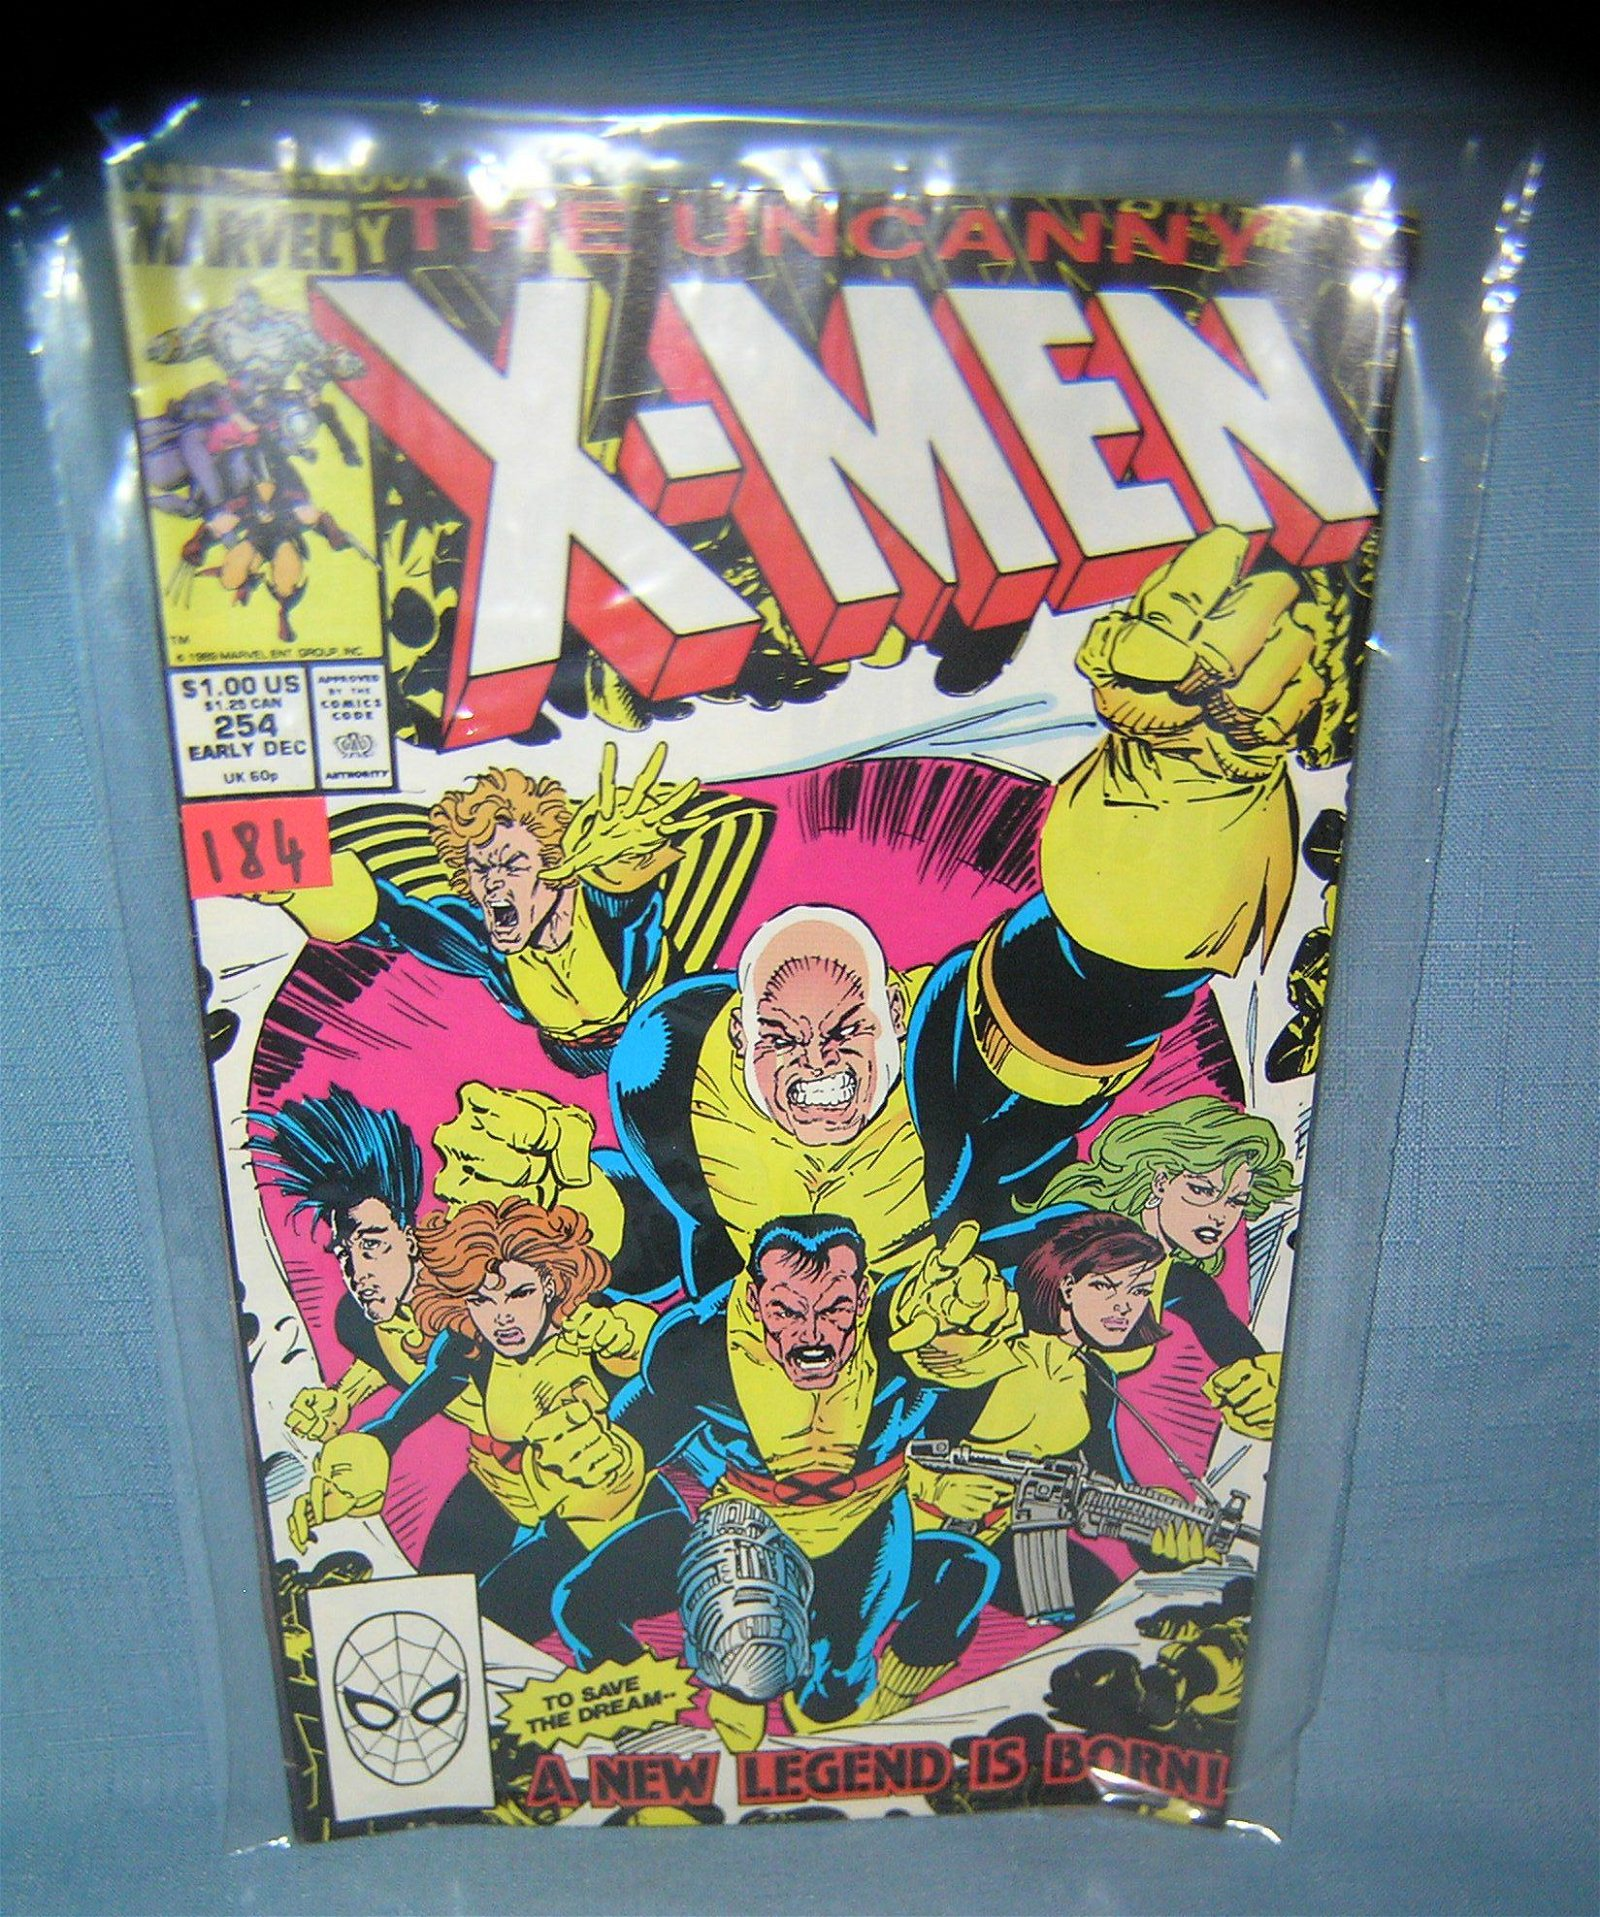 Vintage Xmen comic book the new legend is born